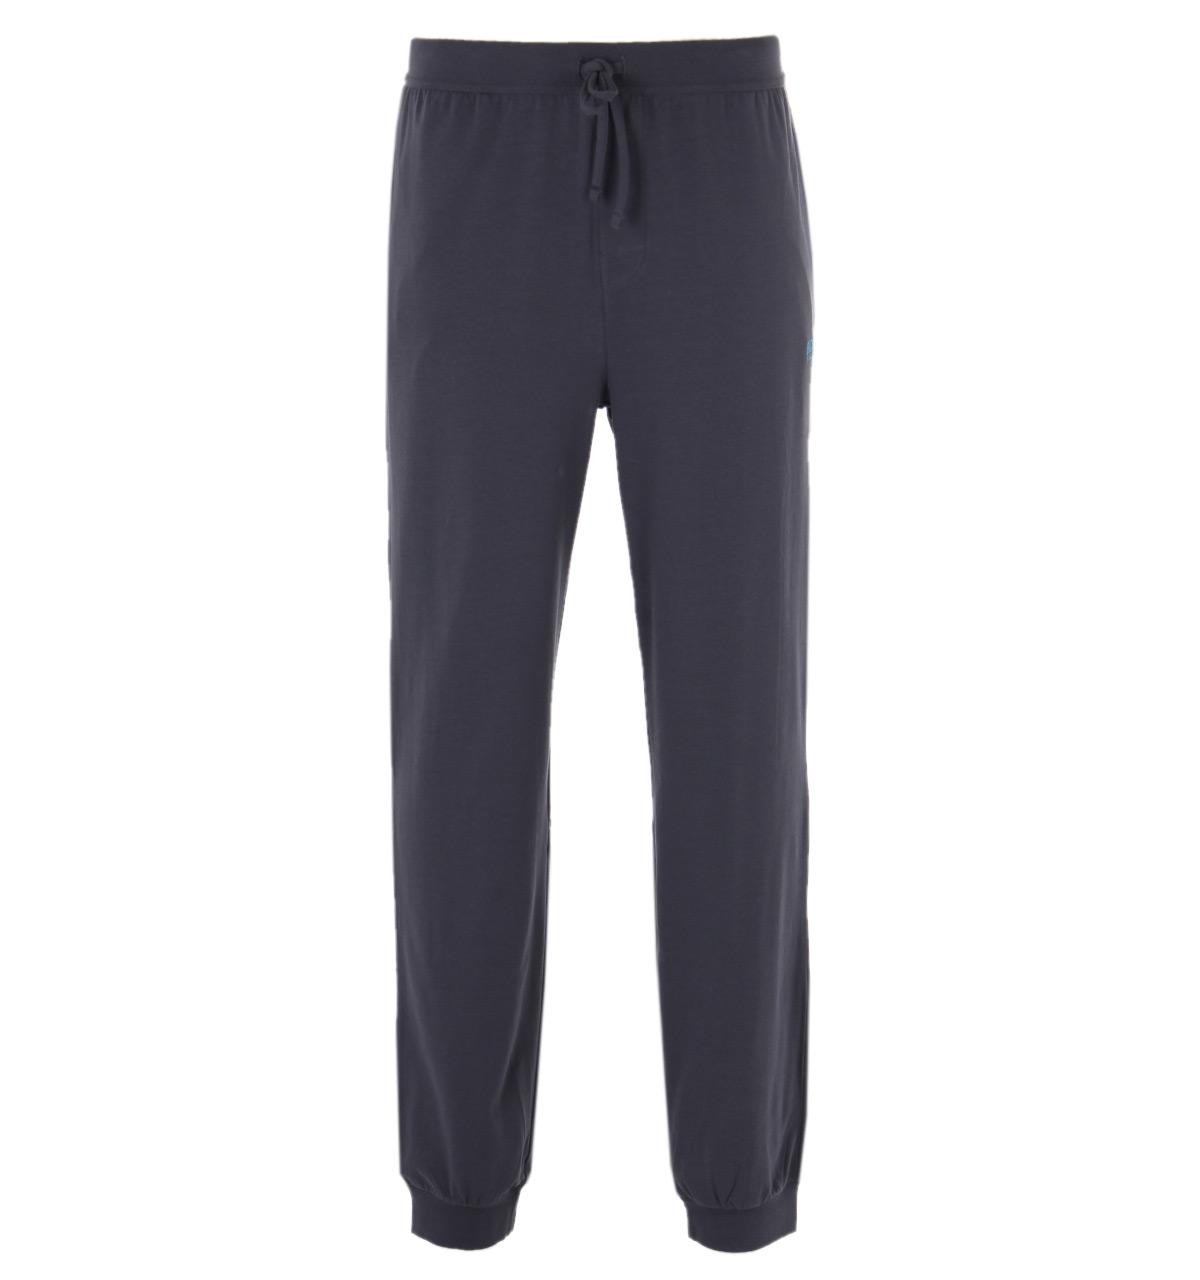 Lyst Boss Charcoal Grey Soft Jersey Loose Fit Tracksuit